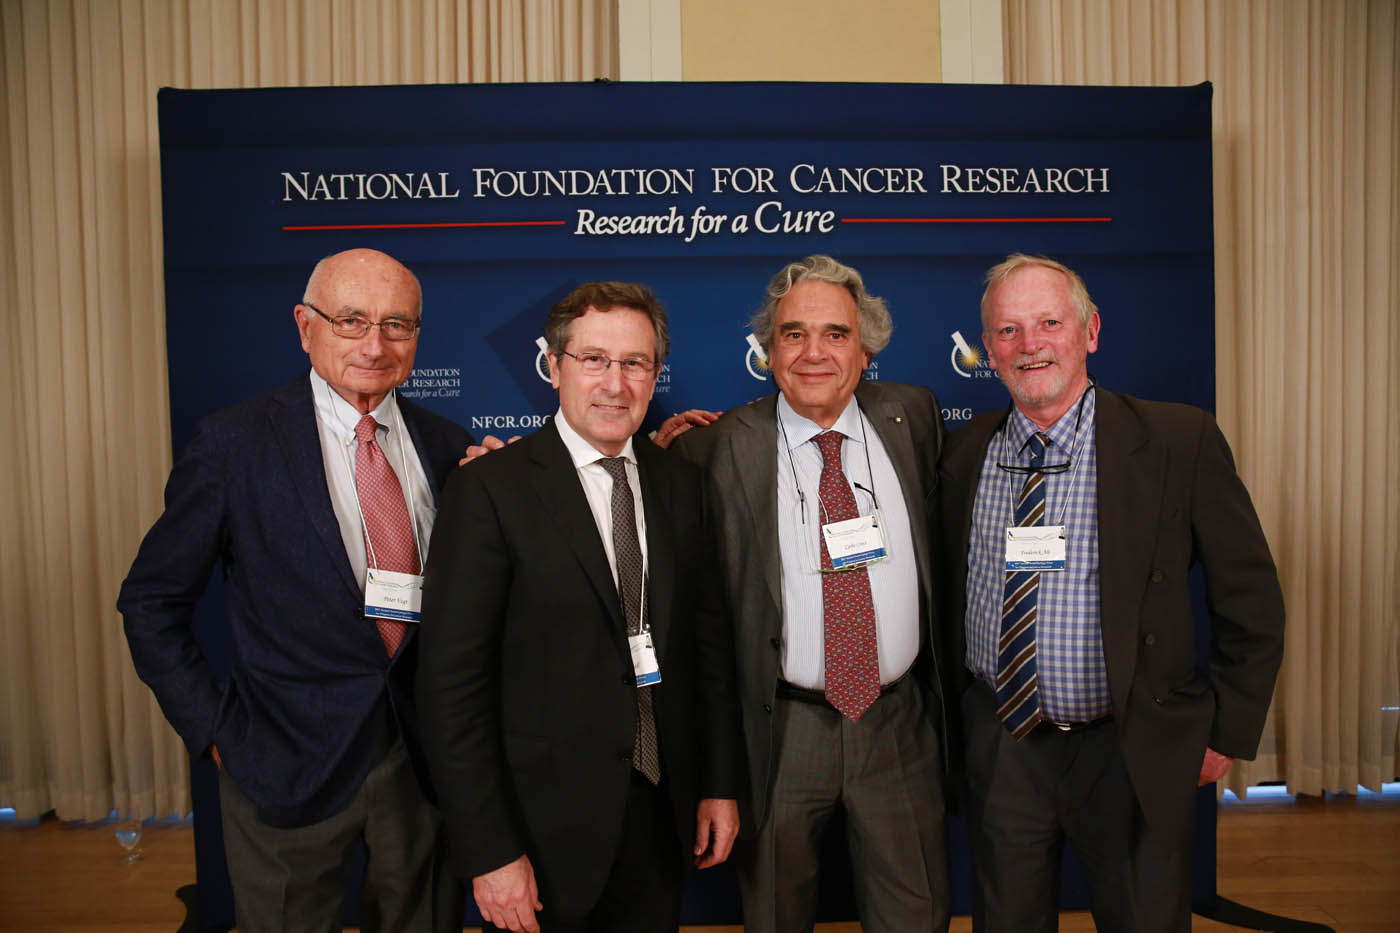 Dr. Michael Hall with past Szent-Györgyi Prize winners Peter Vogt, Carol Croce, and Frederick Alt